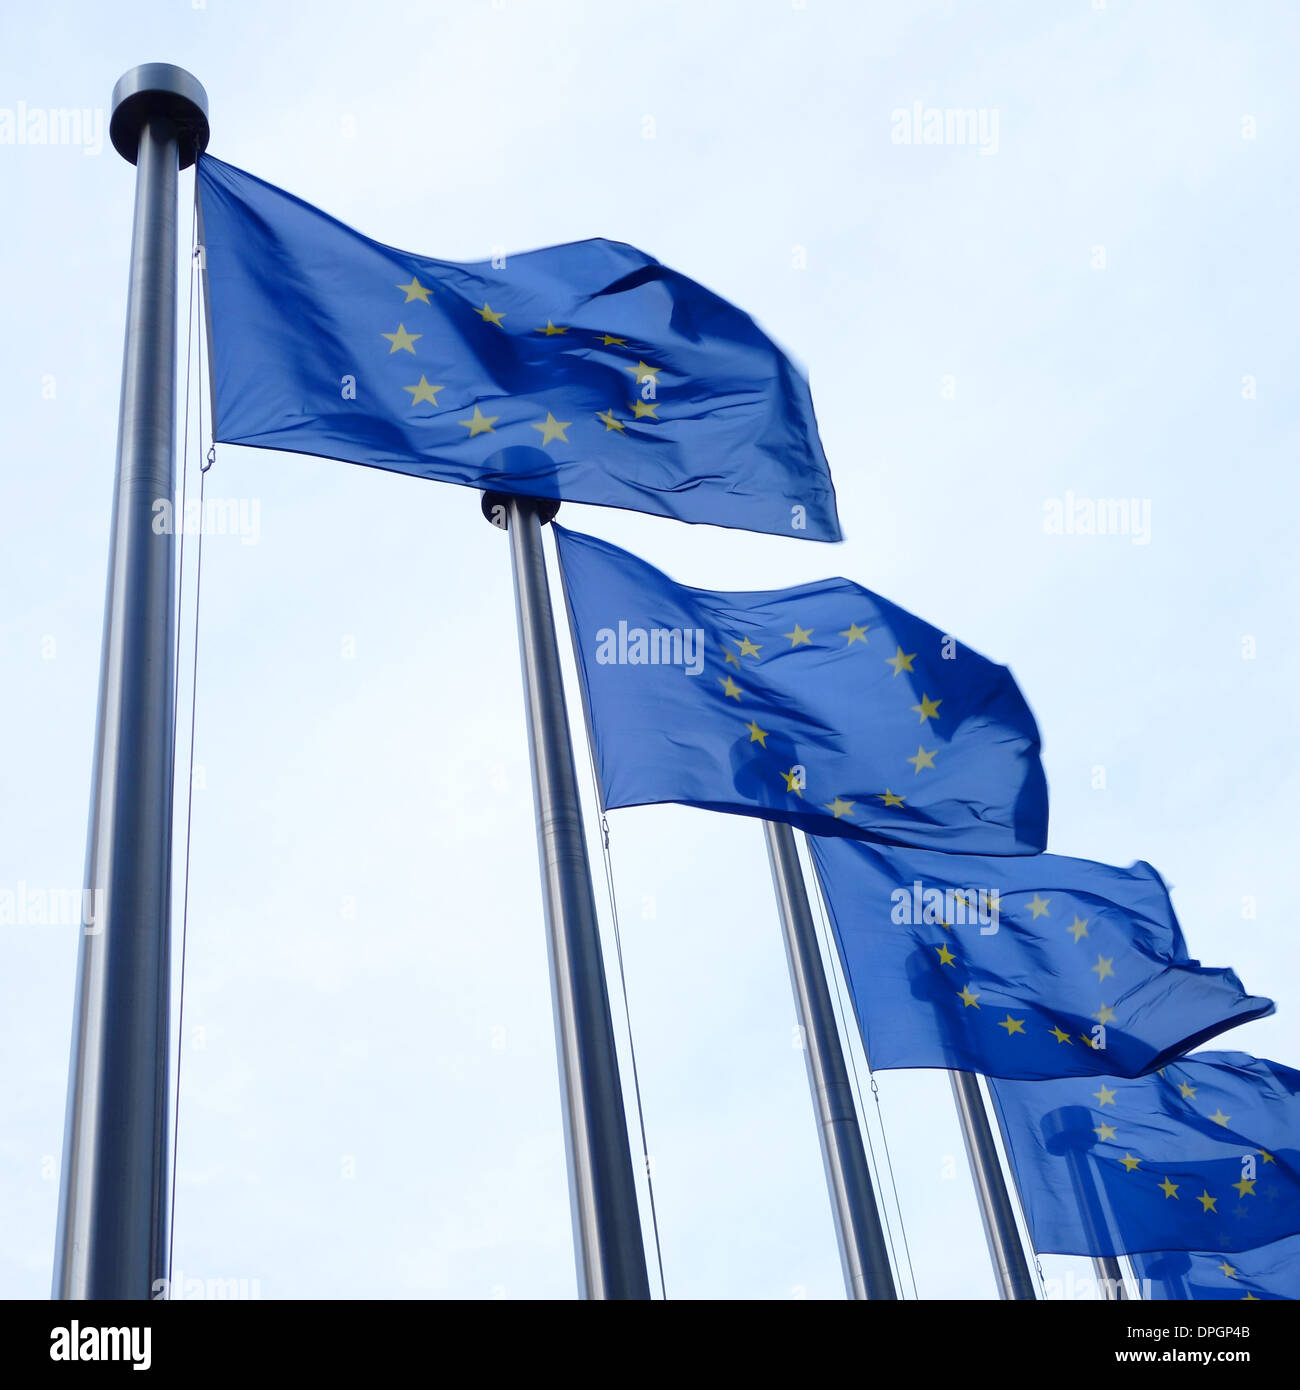 EU flags flying, in front of the European Commission buildings in Brussels, Belgium. - Stock Image